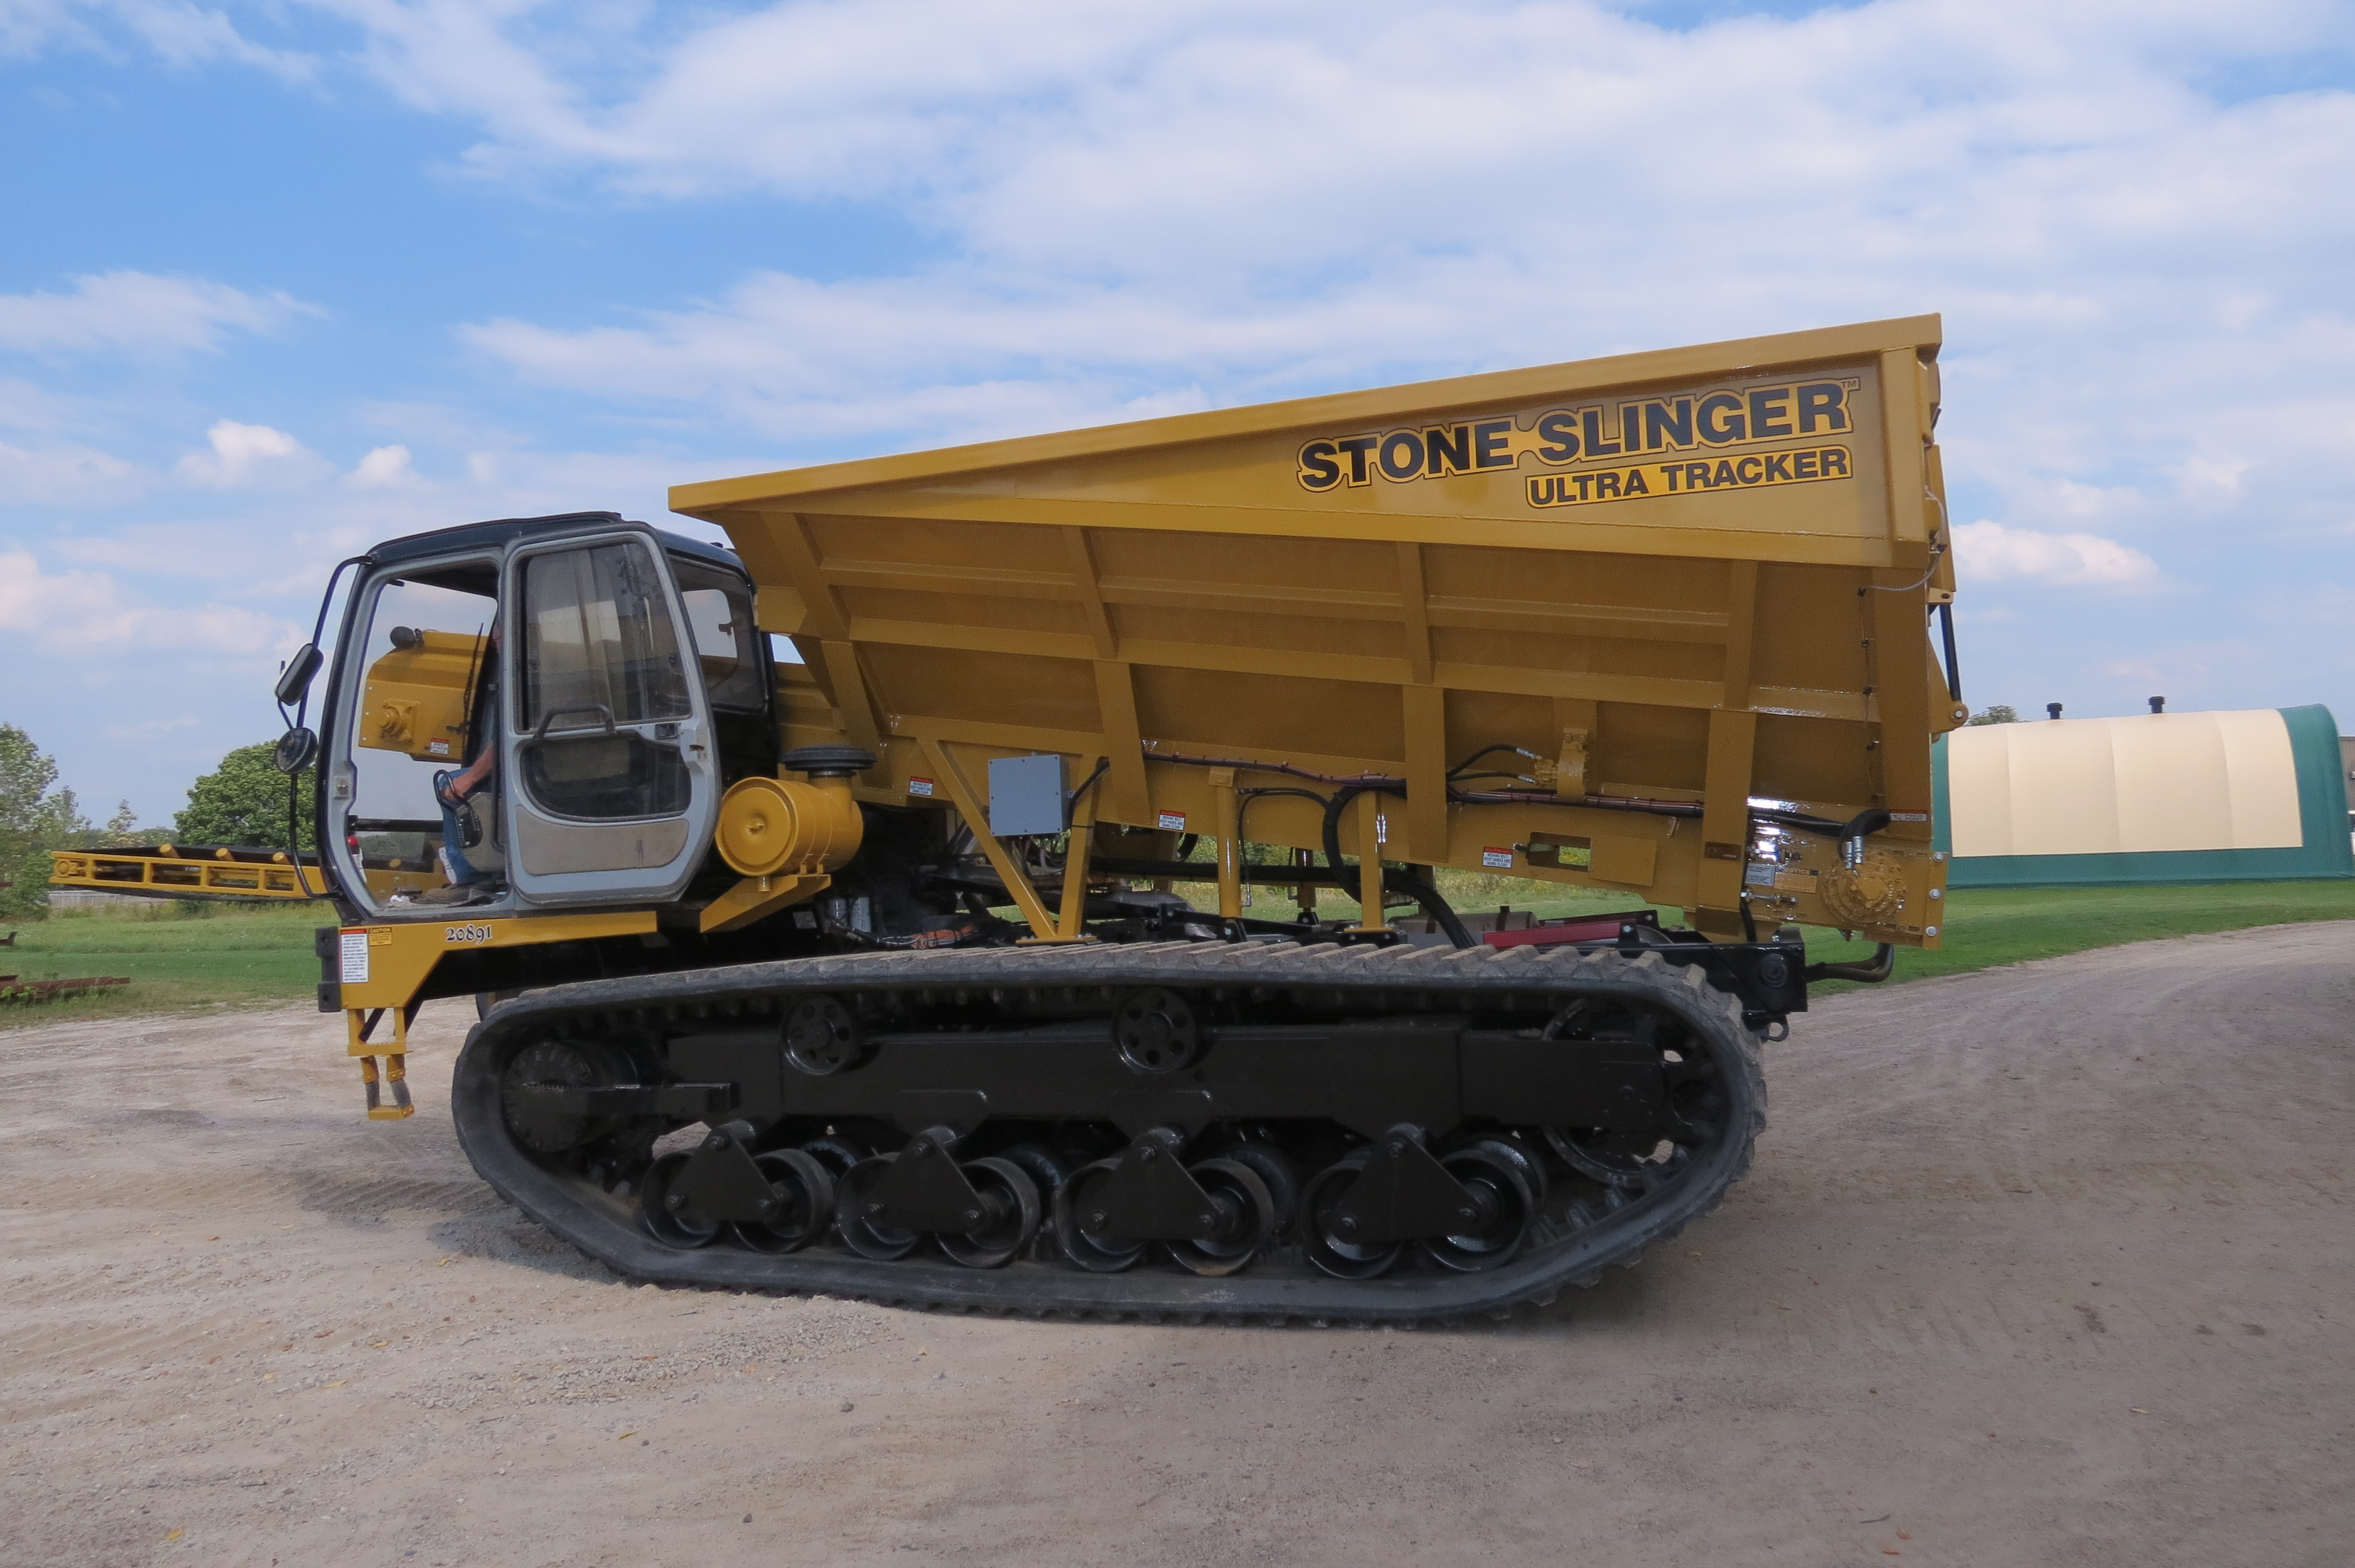 The Morooka 3300 Rubber Tracked Carrier Weighs In At